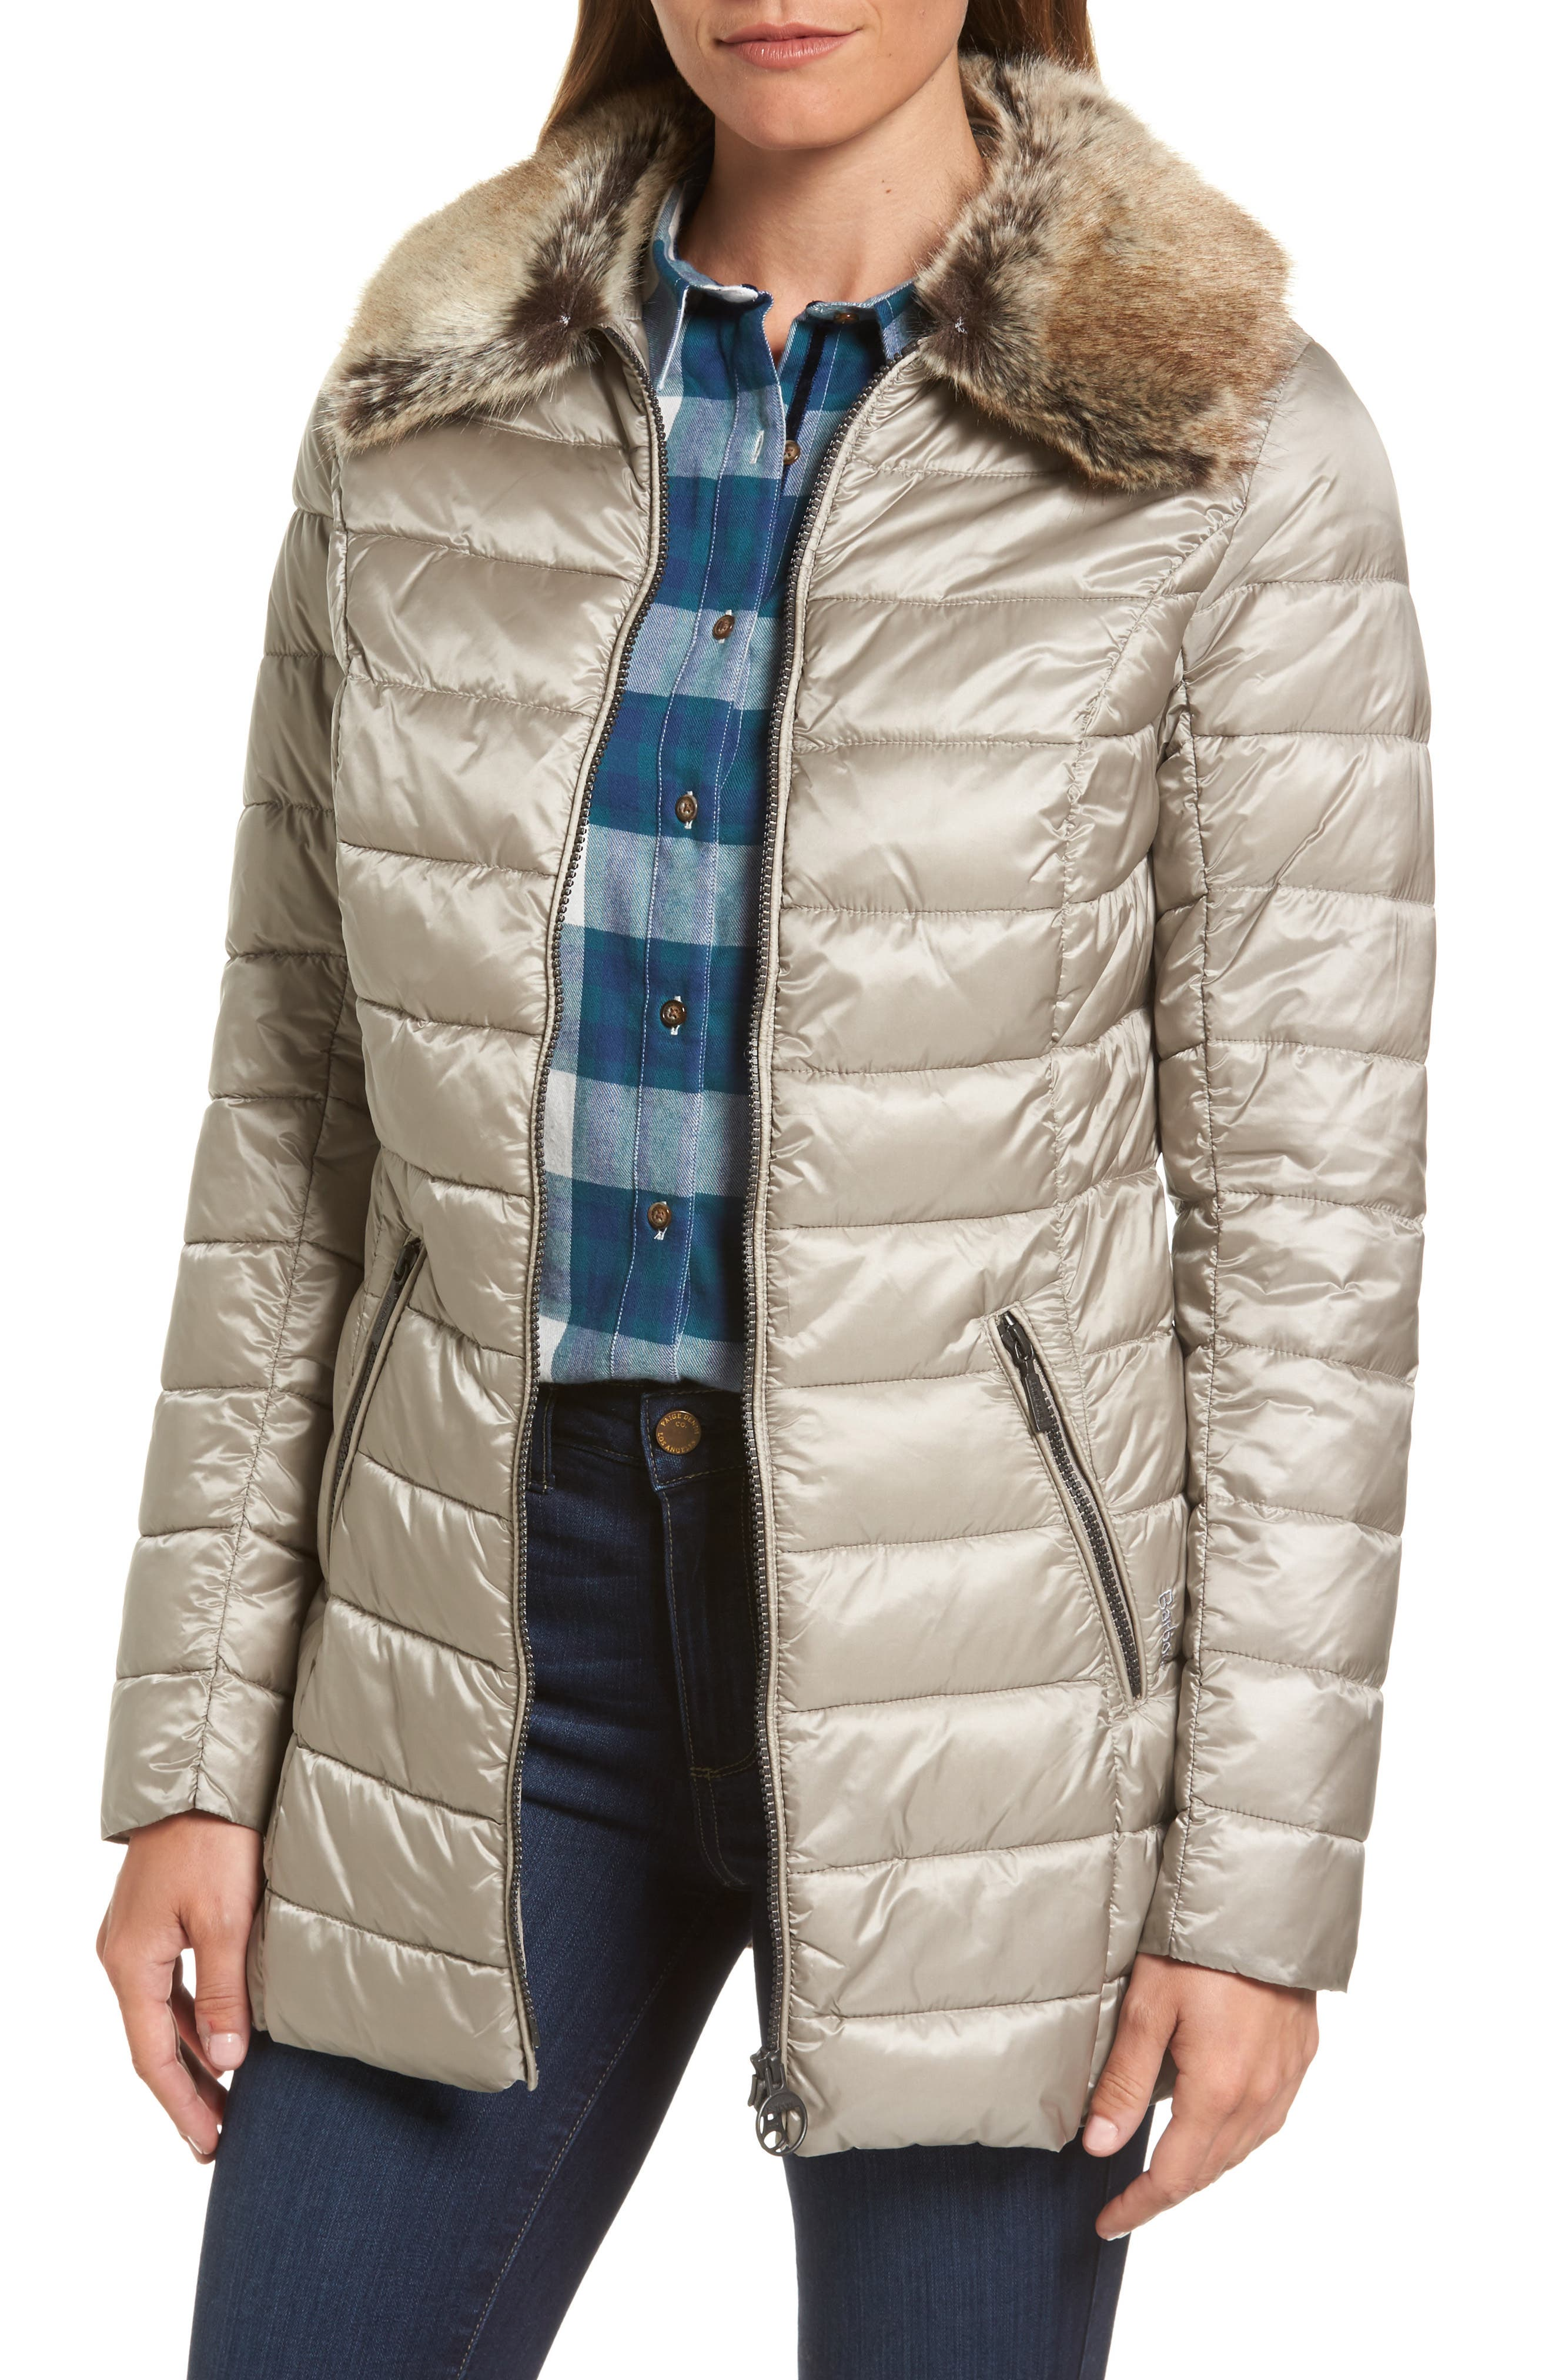 Rambleton Water Resistant Quilted Jacket with Faux Fur Collar,                             Main thumbnail 1, color,                             270